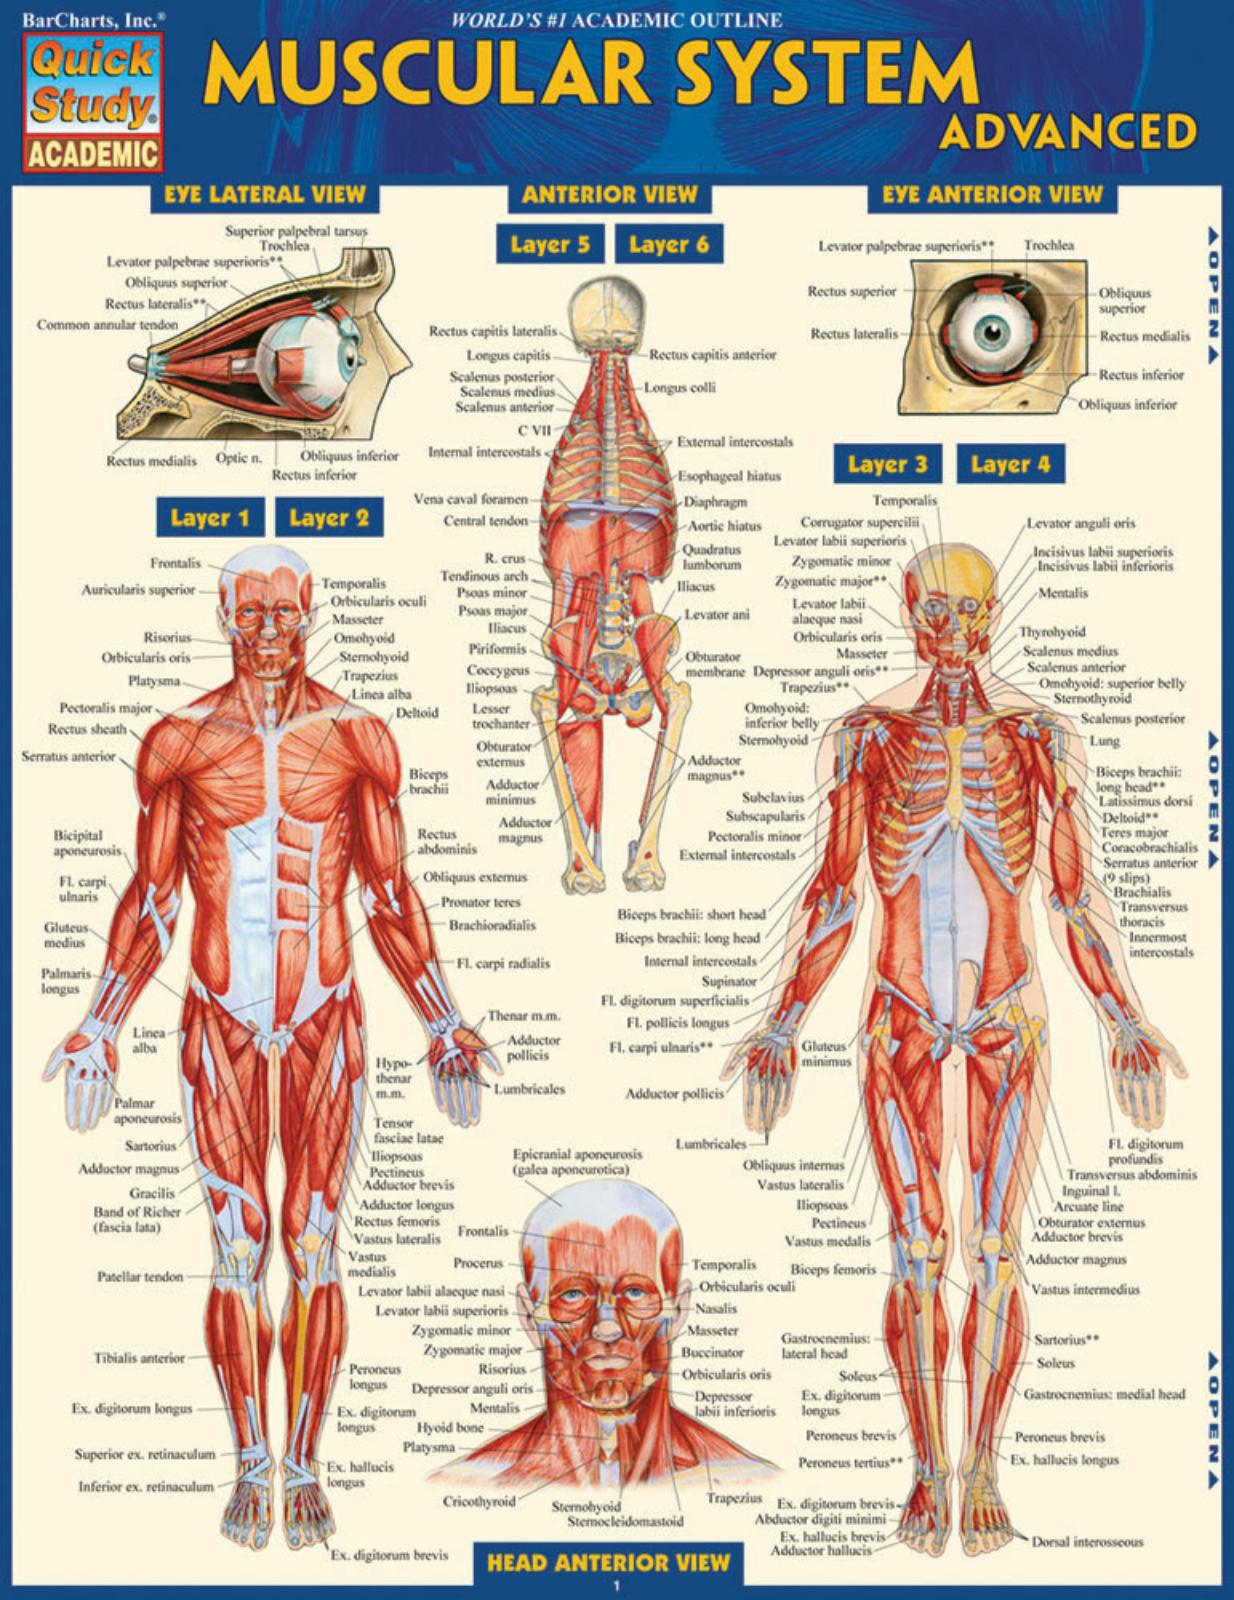 MUSCULAR SYSTEM ADVANCED